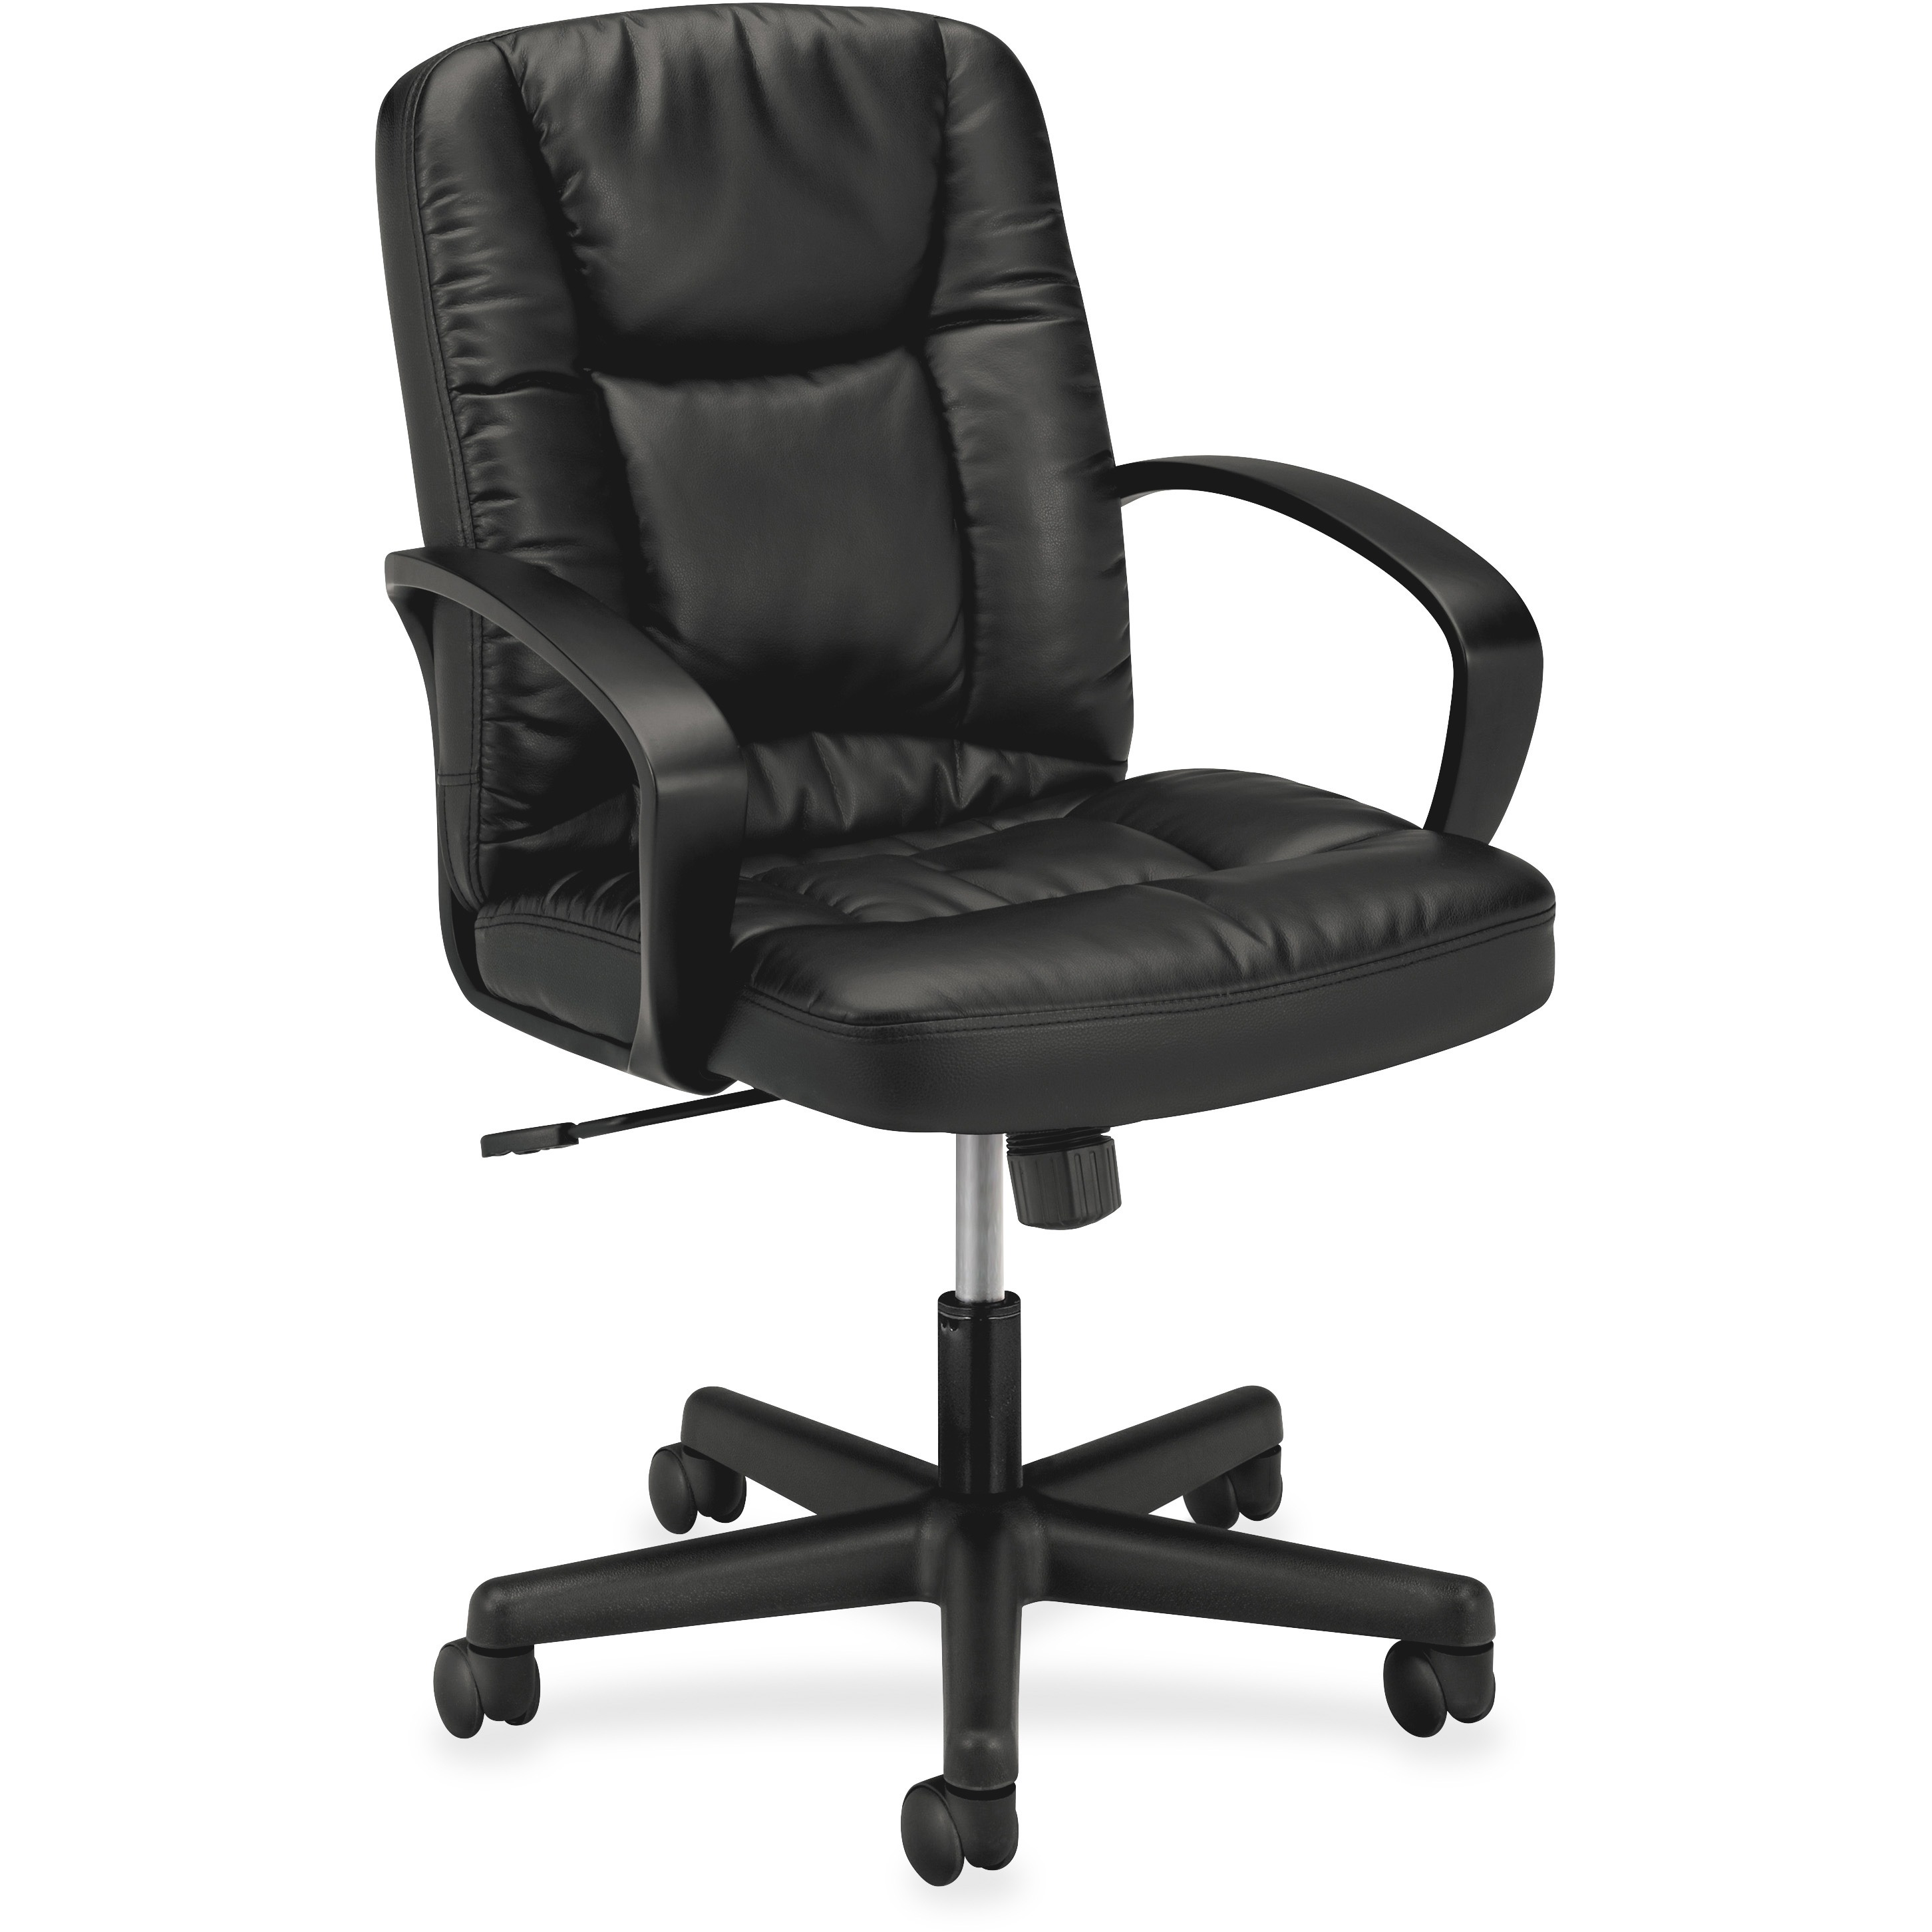 basyx VL171 Series Executive Mid-Back Office Chair, Black Leather